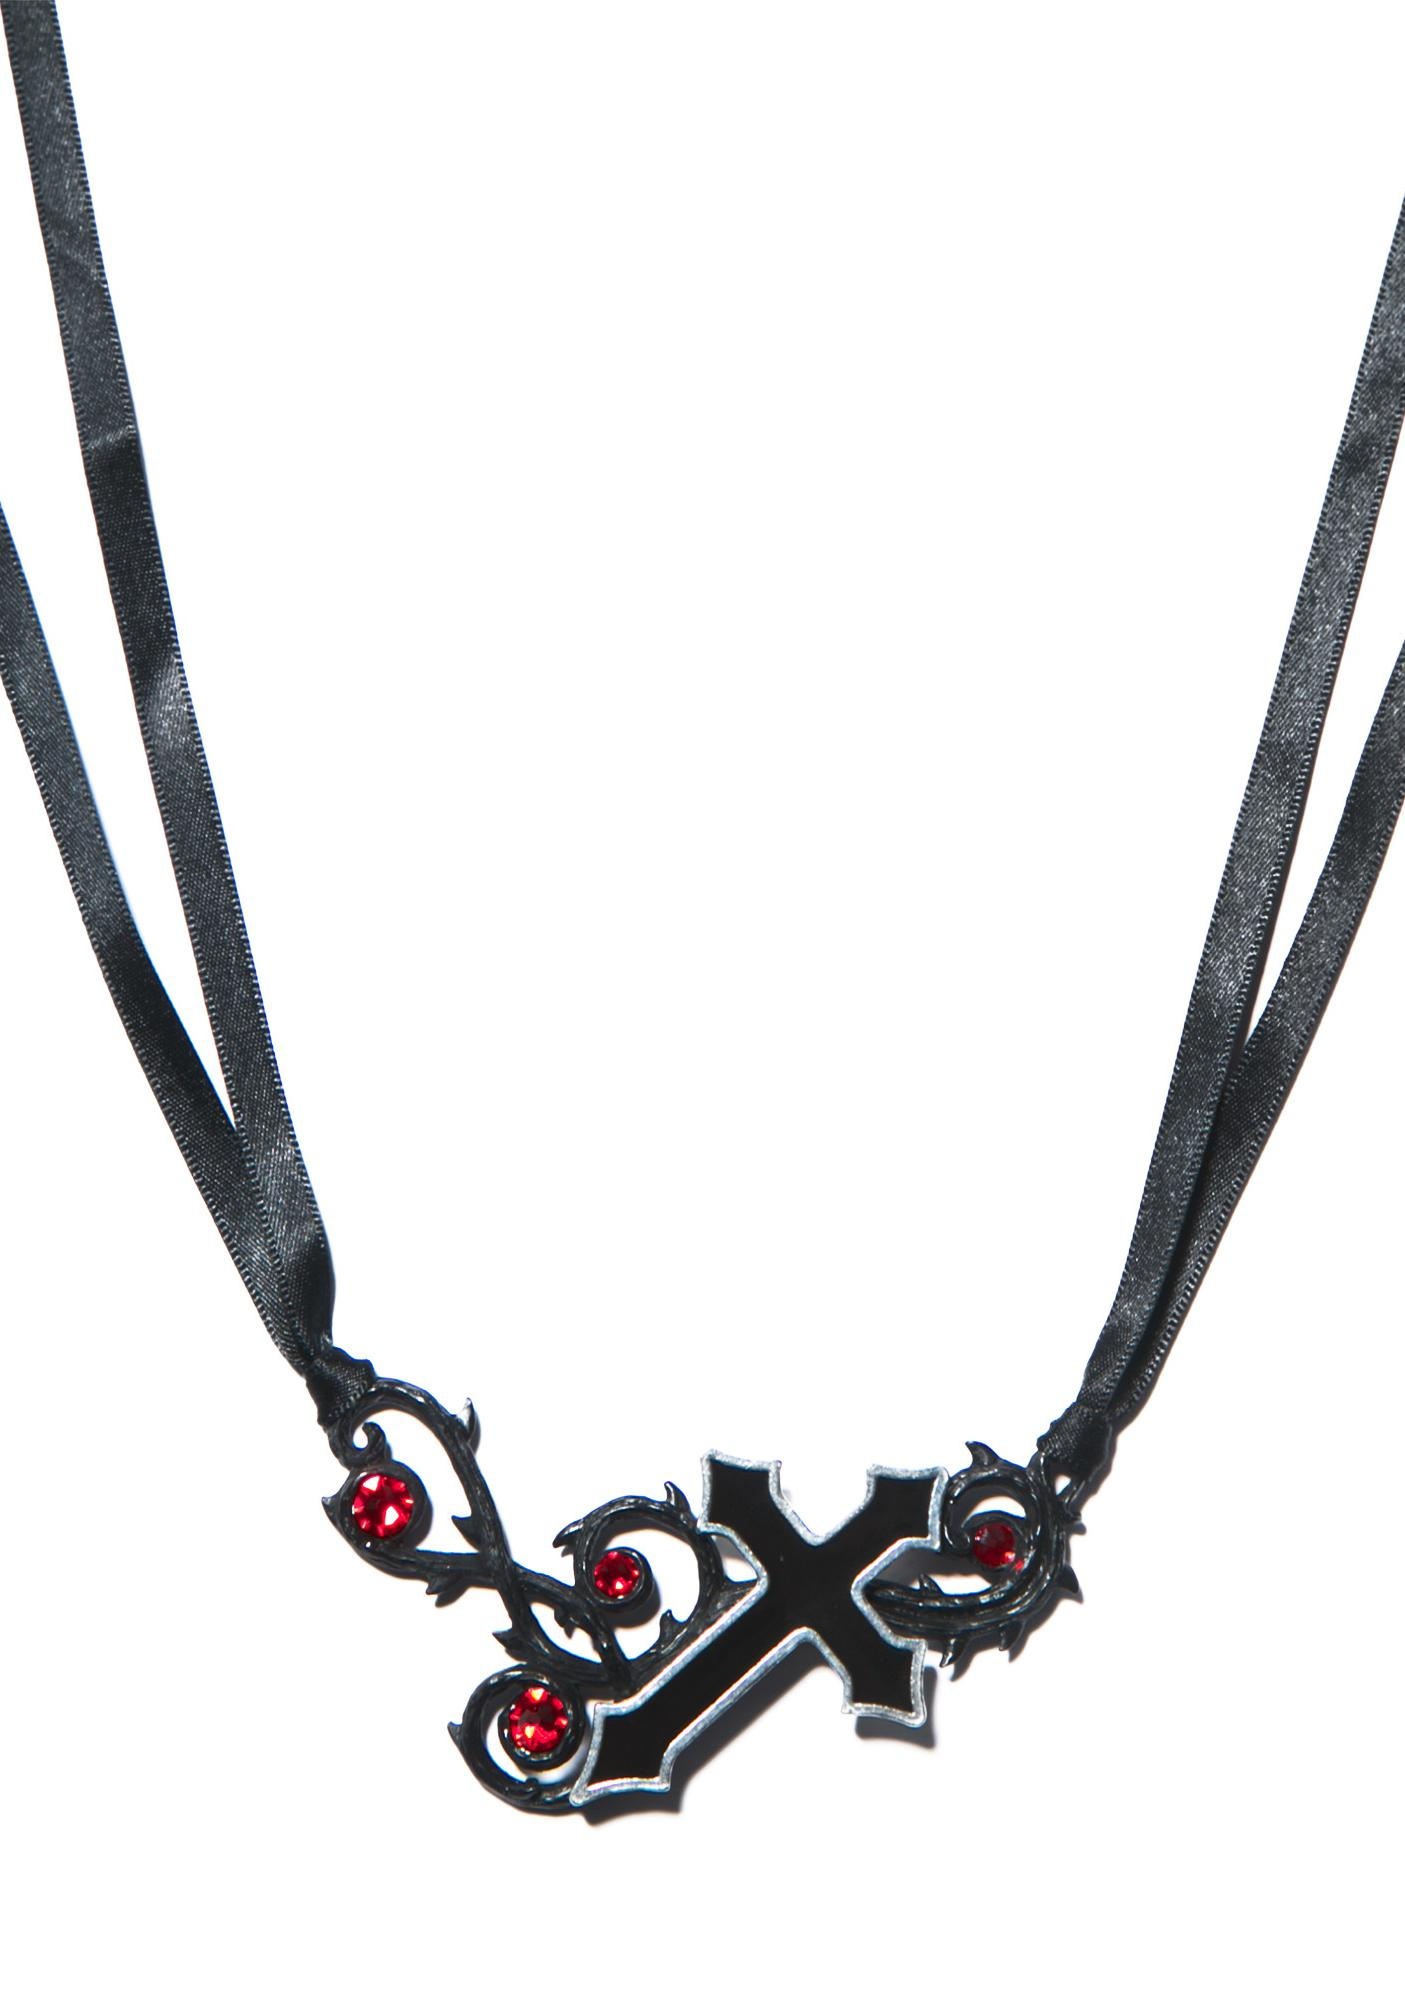 The Murnan Cross of Sorrow Necklace